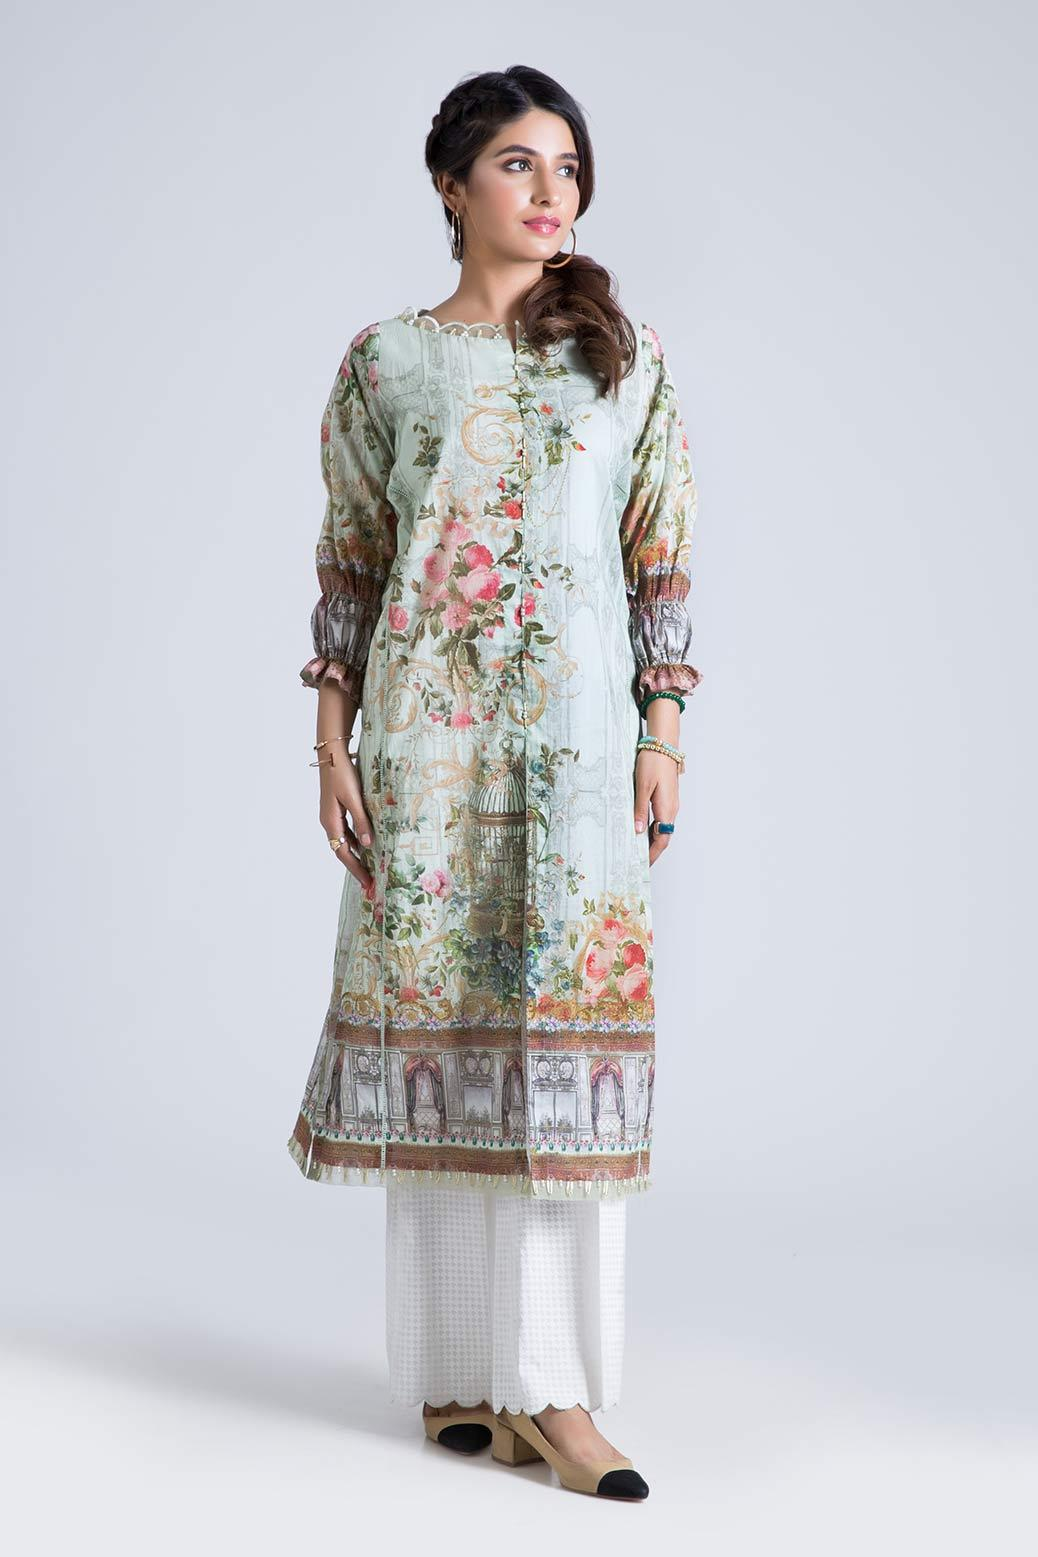 0feed891afd1 Bonanza Satrangi 2019  Summer Lawn Collection - Daraz.pk